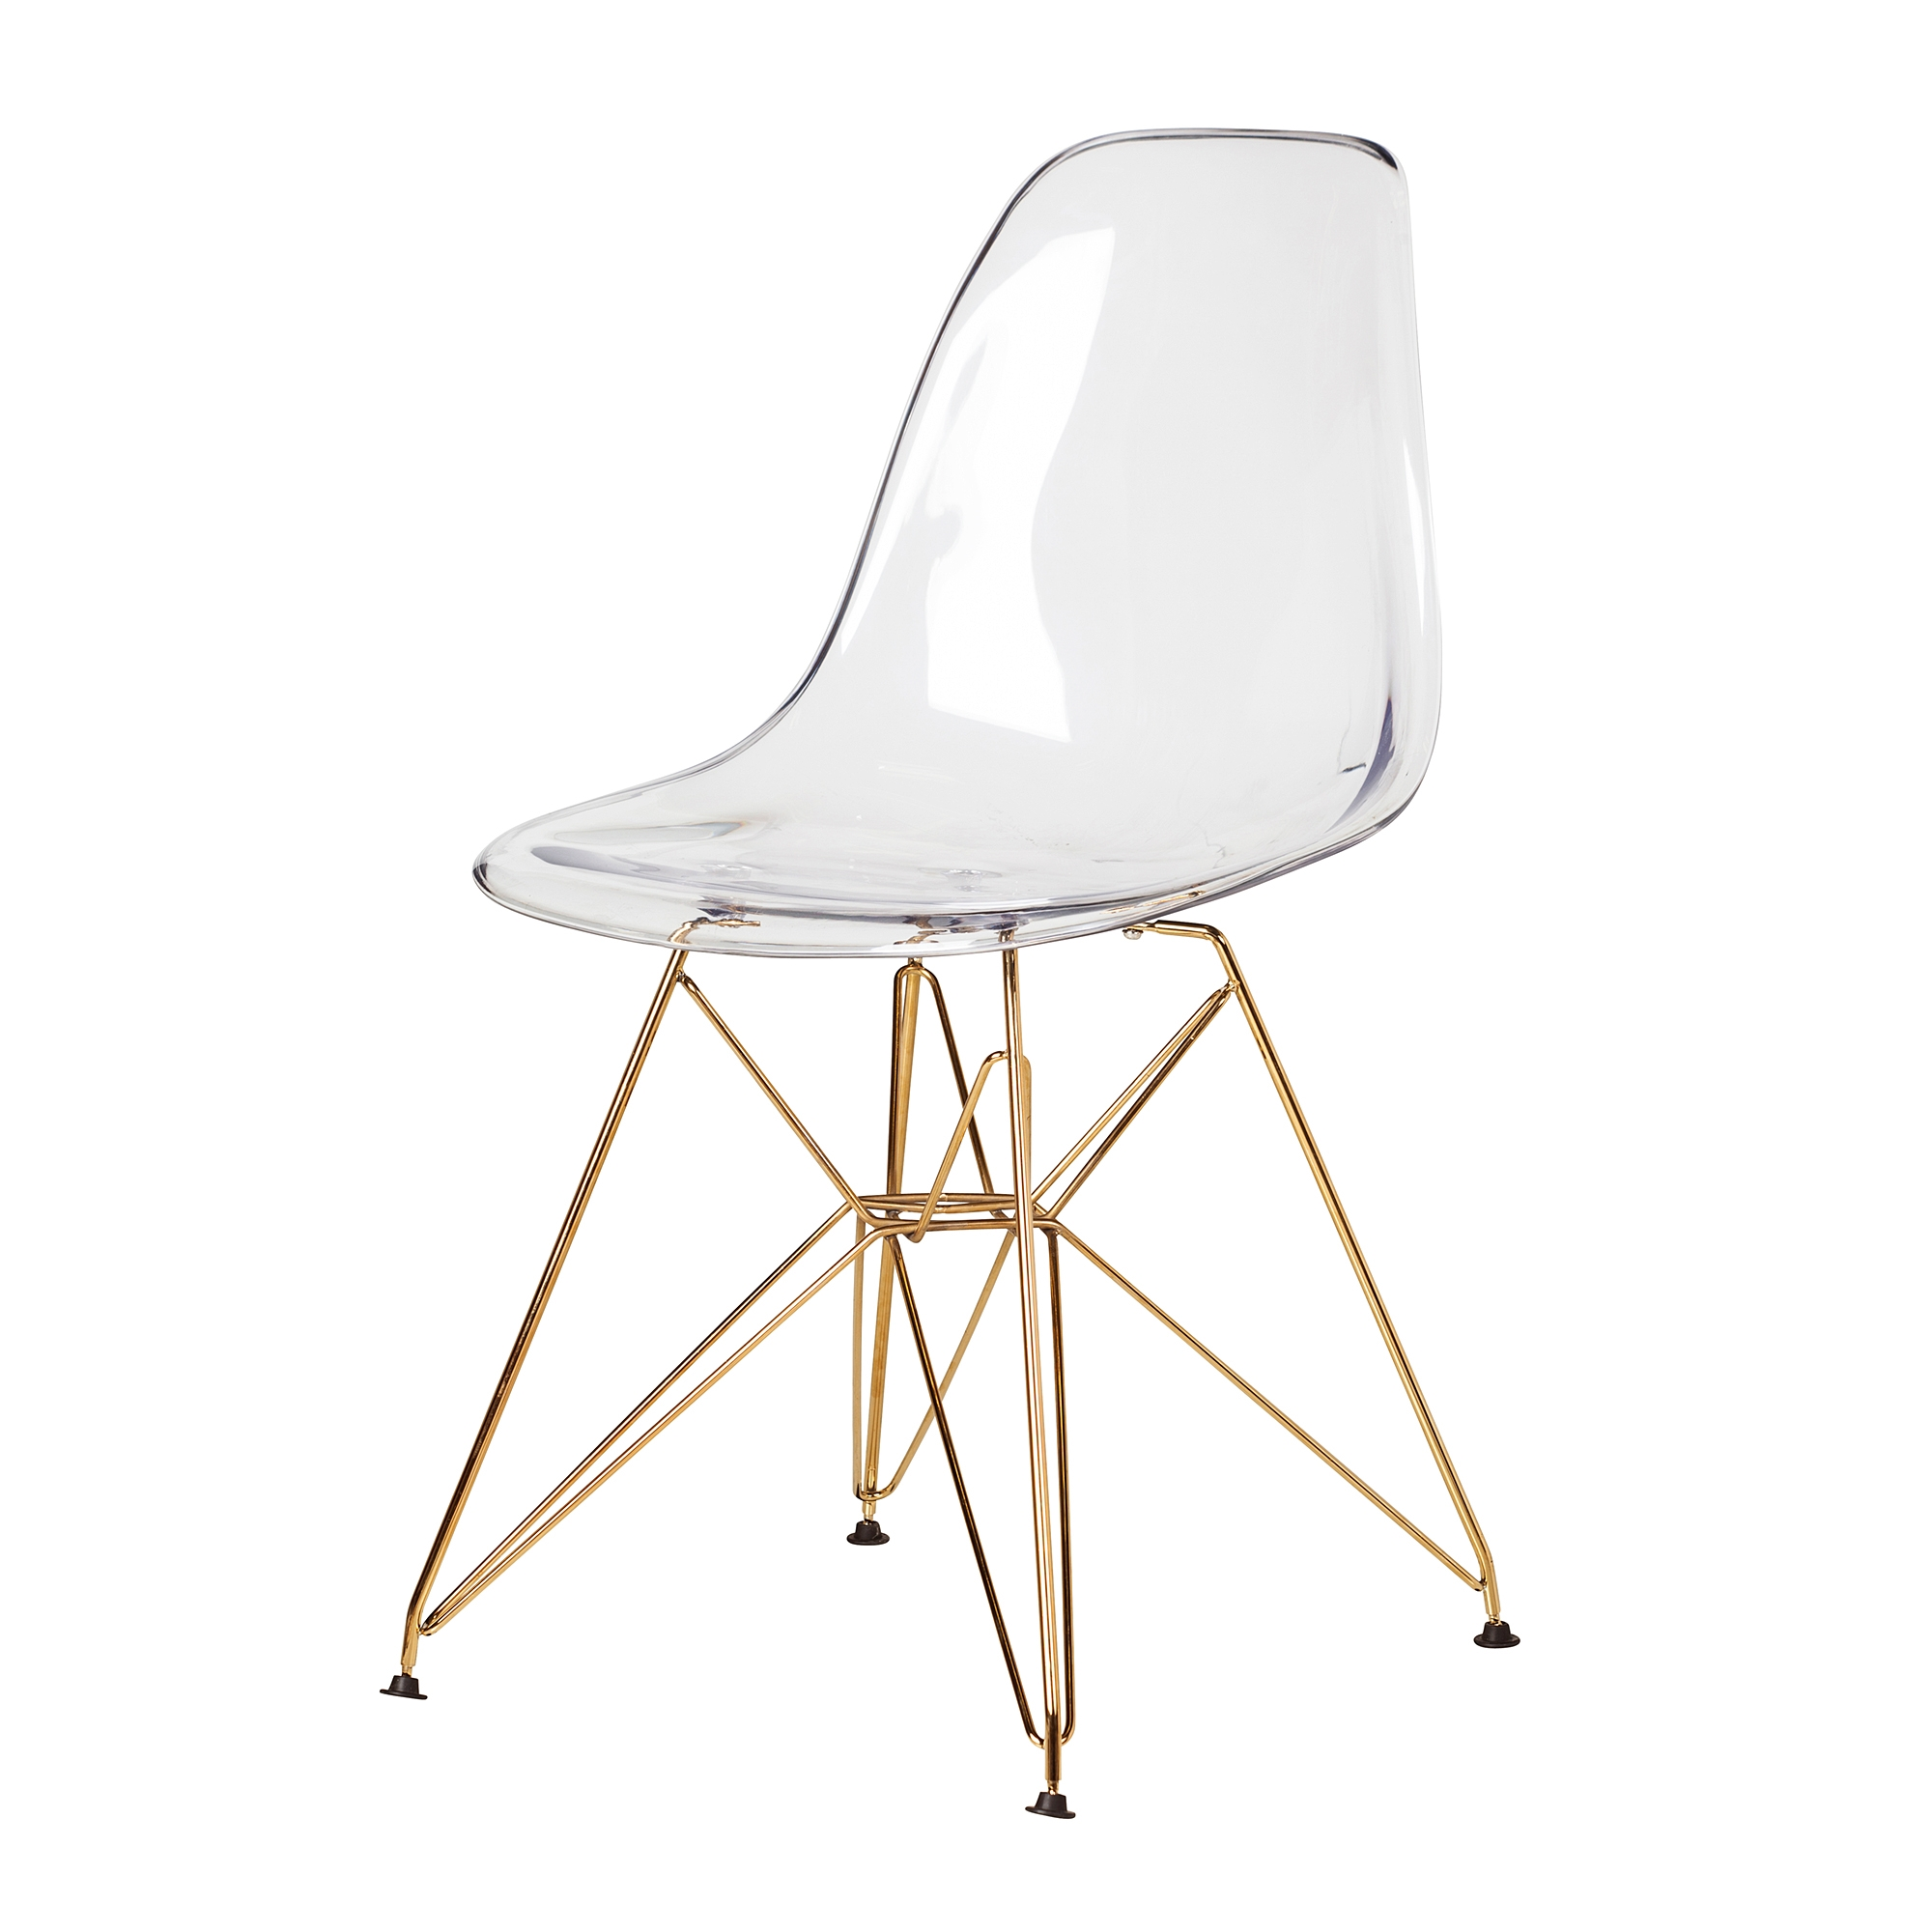 Marvelous Eames Dsr White Side Chair Eiffel Legs The Khazana Home Austin Furniture Store Onthecornerstone Fun Painted Chair Ideas Images Onthecornerstoneorg